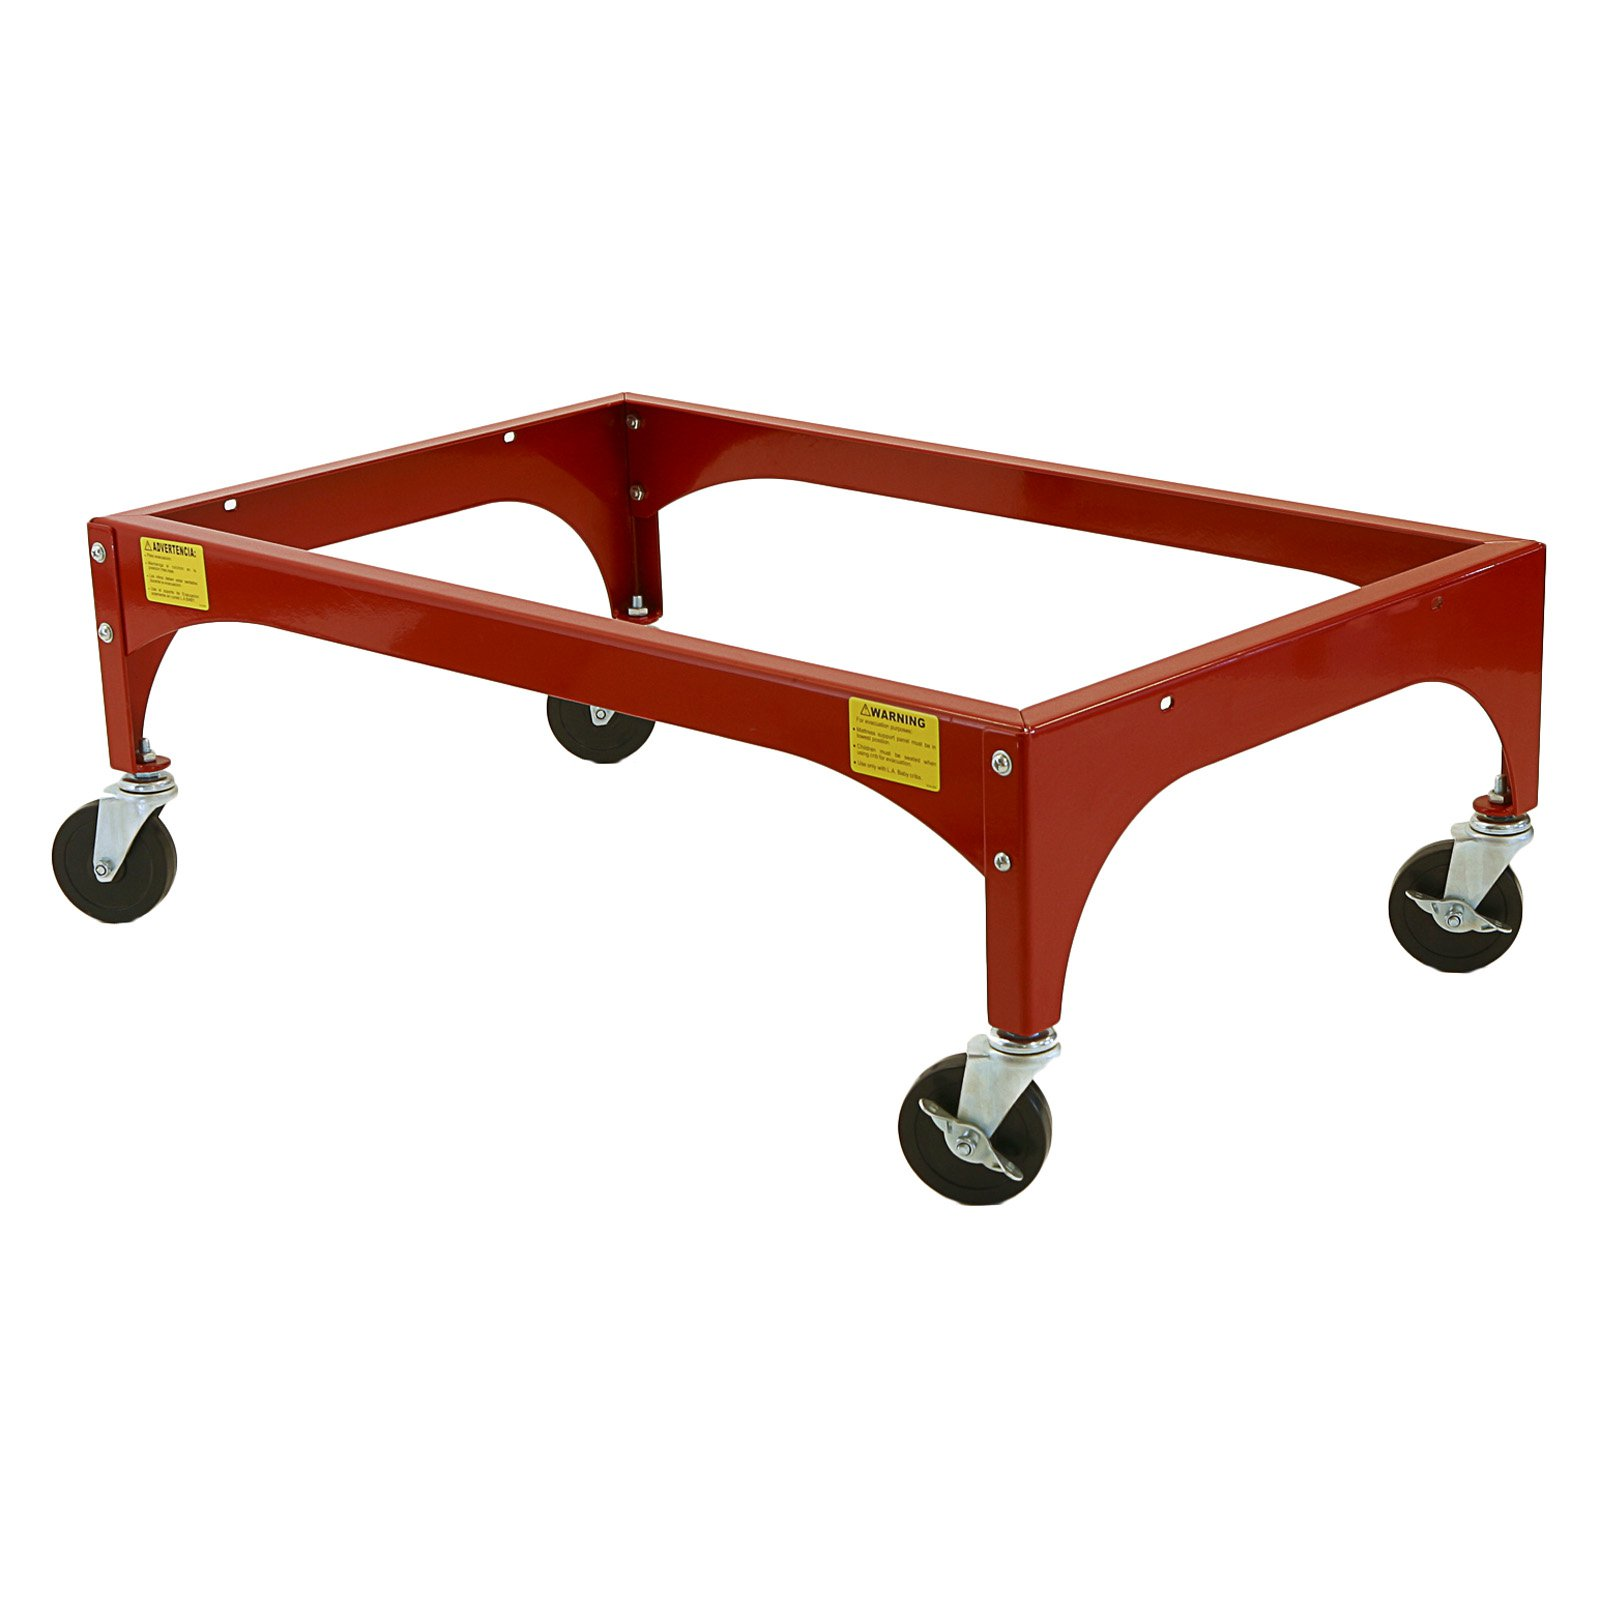 LA Baby Evacuation Frame for Window Cribs with Heavy Duty Casters